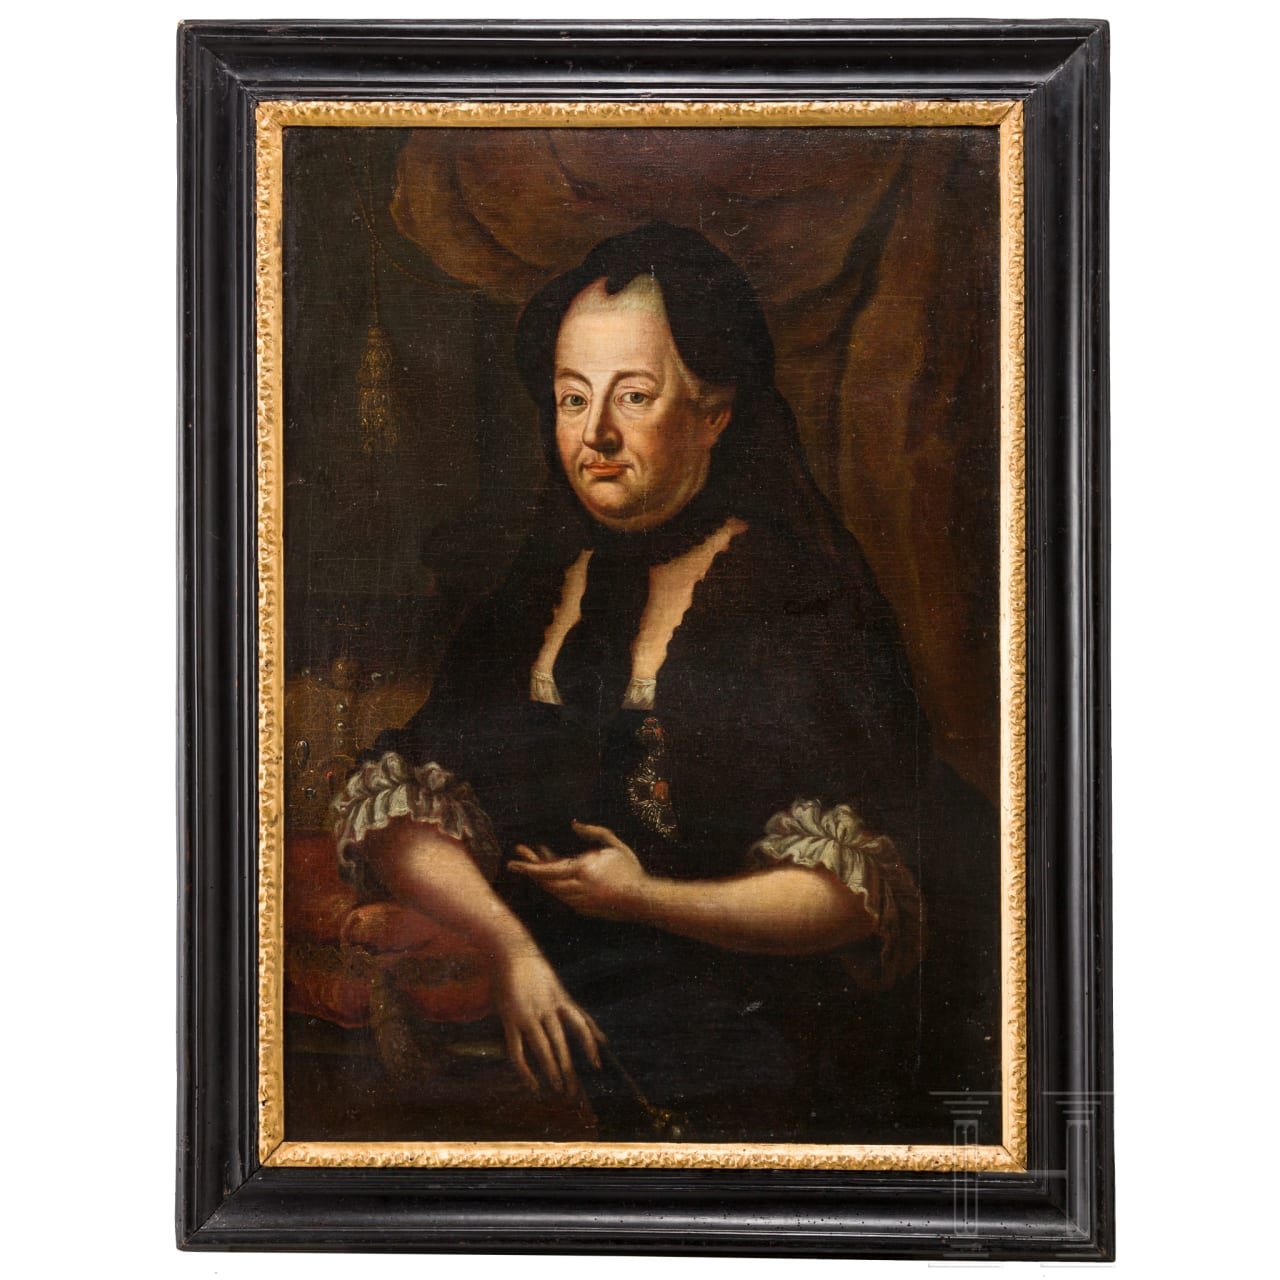 Empress Maria Theresia (1717 - 1780) - portrait painting in black mourning clothes